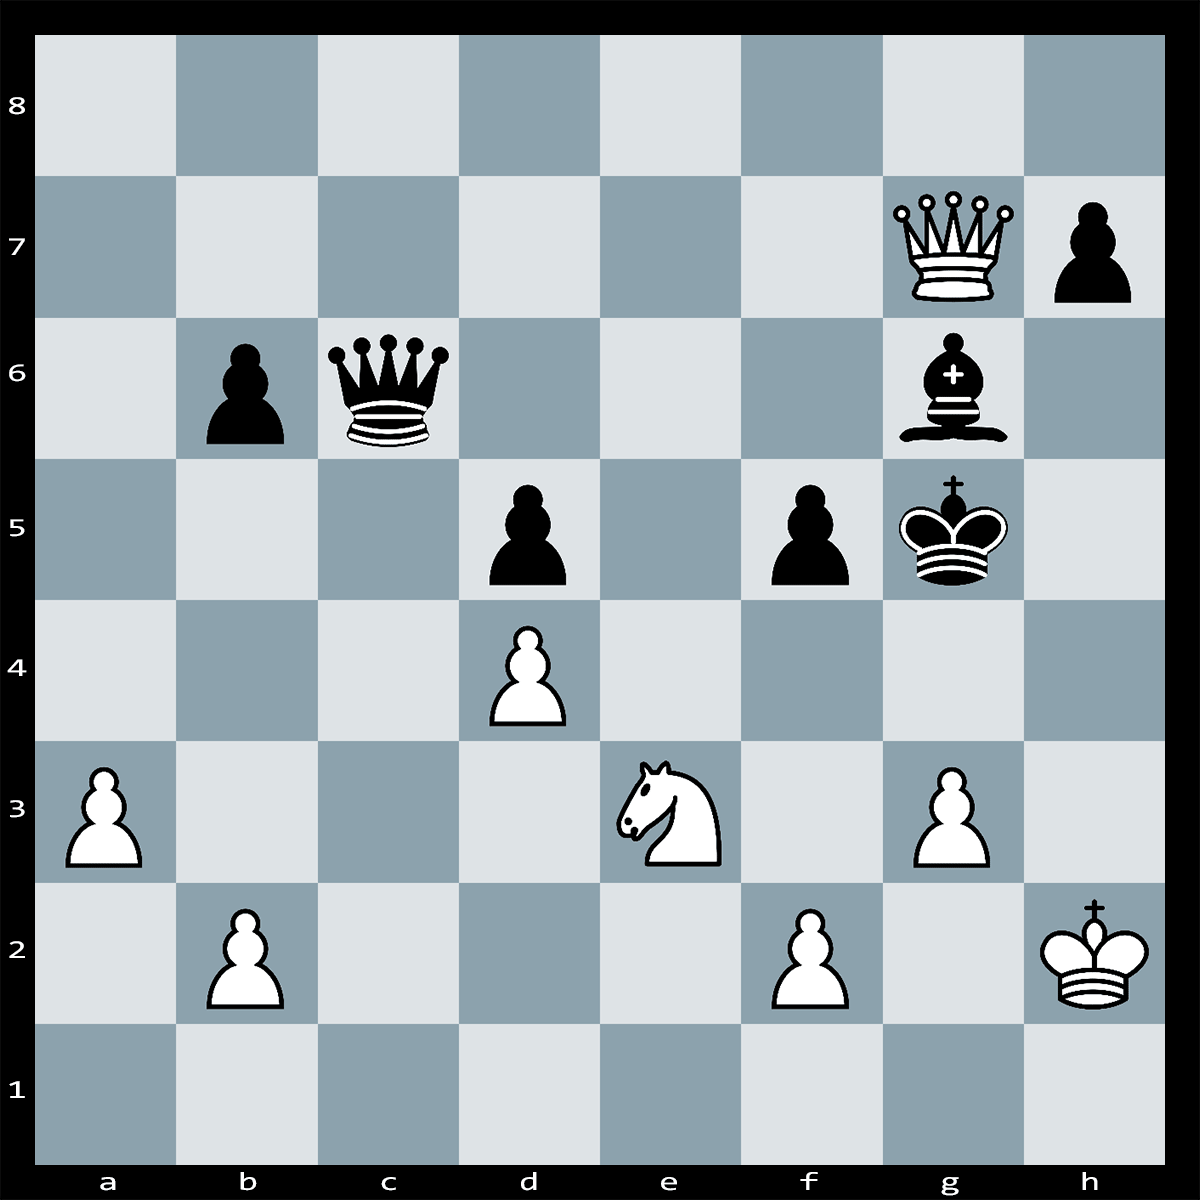 Chess Puzzle #283 | White has a winning move here. Can you spot it? Checkmate in 5, White to Play.